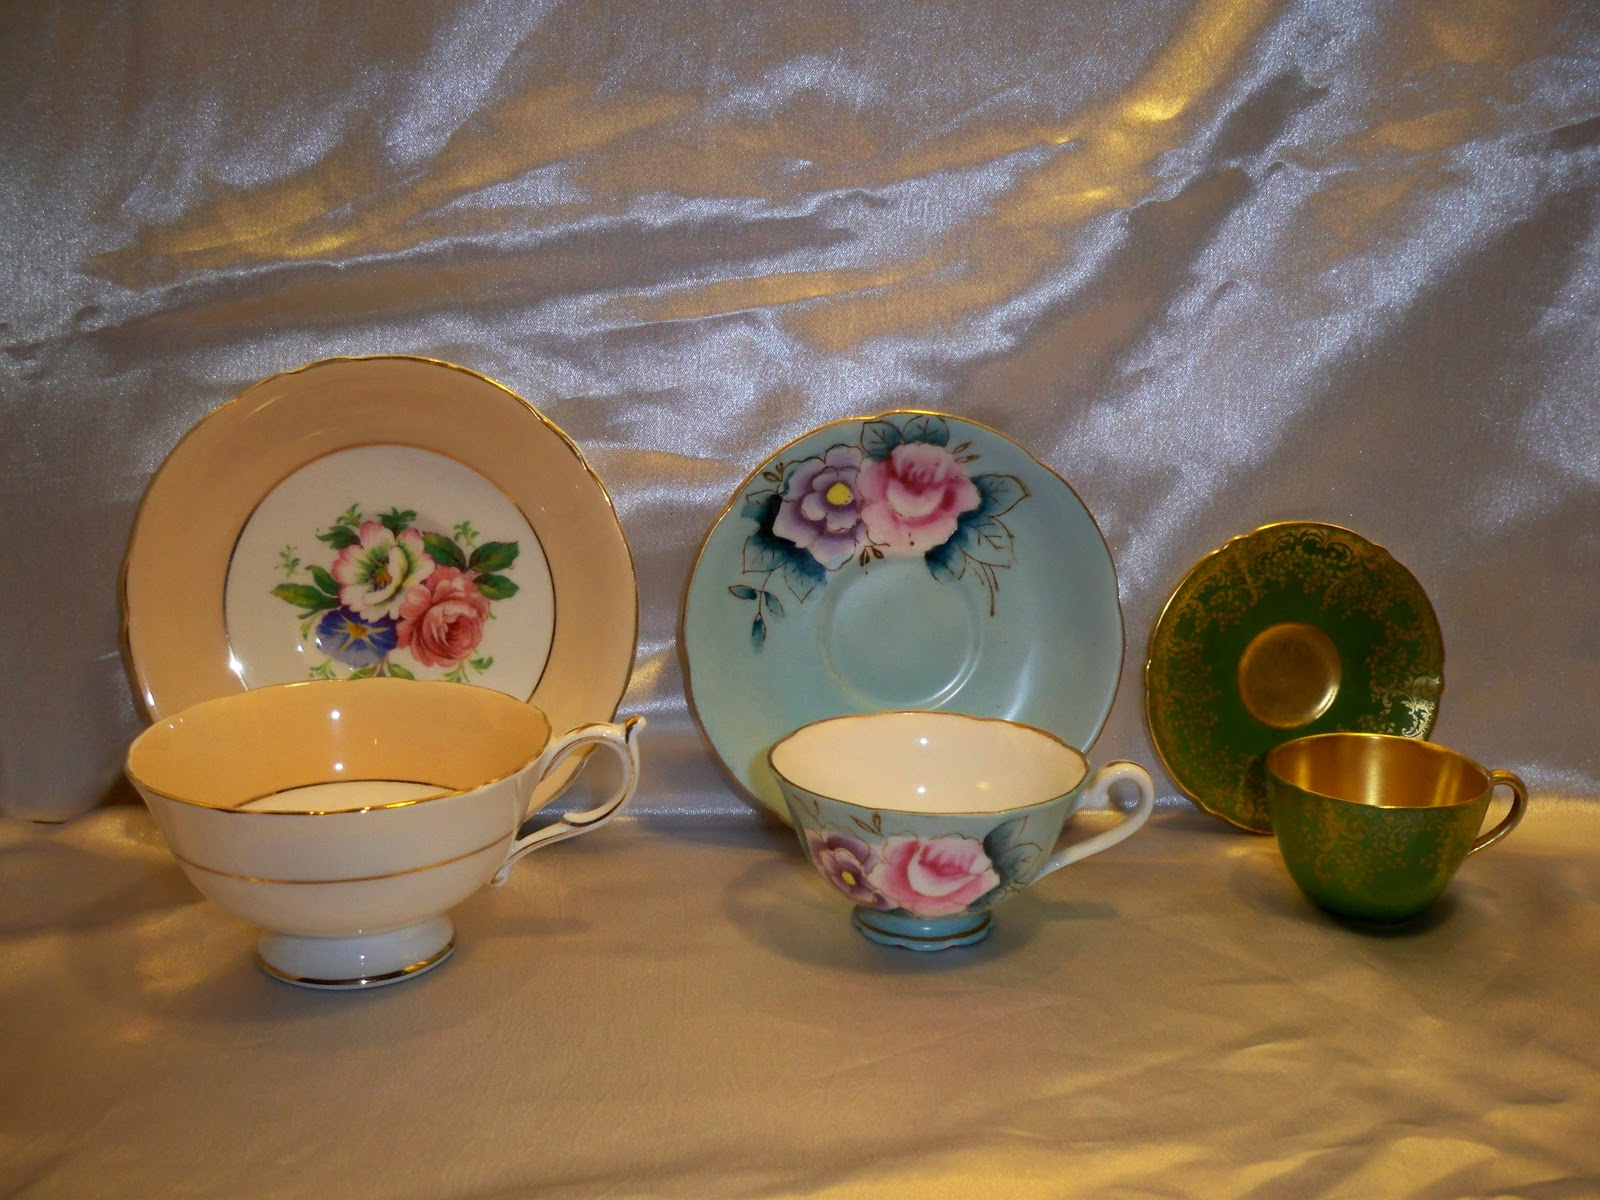 Demitasse Cups & saucers: History of the Cup & Saucer